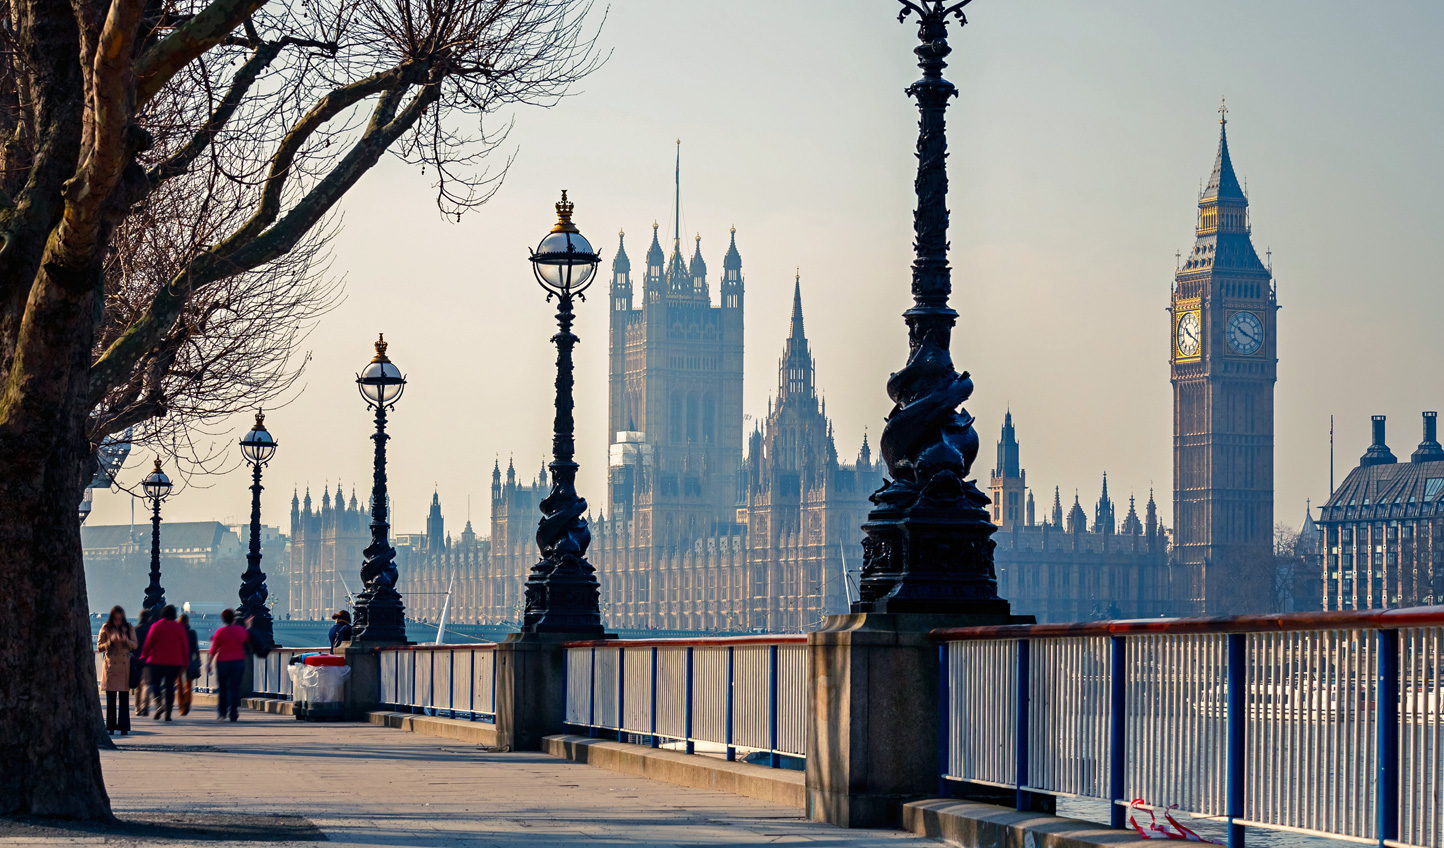 Our top tip? A morning walk along South Bank taking in all the sights across the river